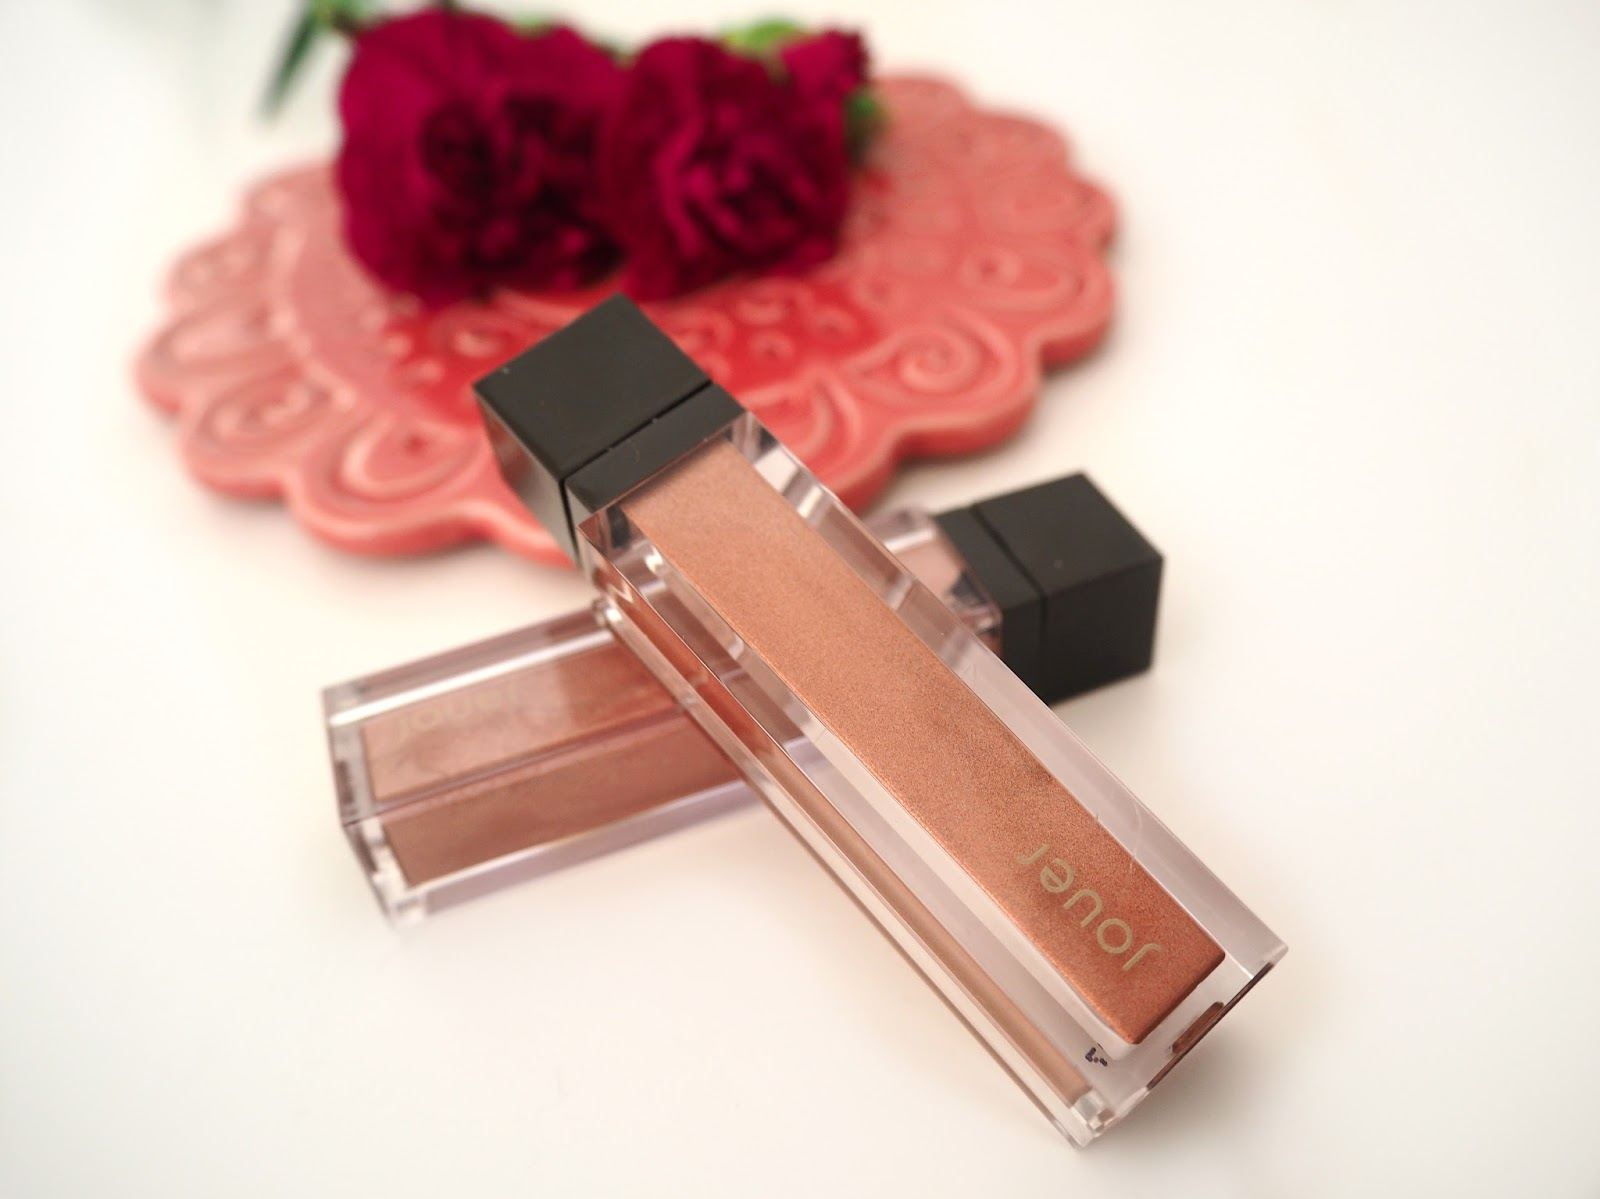 Jouer Cosmetics Metallic Lipsticks, Katie Kirk Loves, UK Blogger, Beauty Blogger, Swatches, Liquid Lipsticks, Metallic Lipstick, Rose Gold Lipstick, Jouer Cometics, Praline Lipstick, Citronade Rose Lipstick, Lipstick Swatches, UK Beauty Blogger, Make Up Blogger, Make Up Review, Make Up Swatches